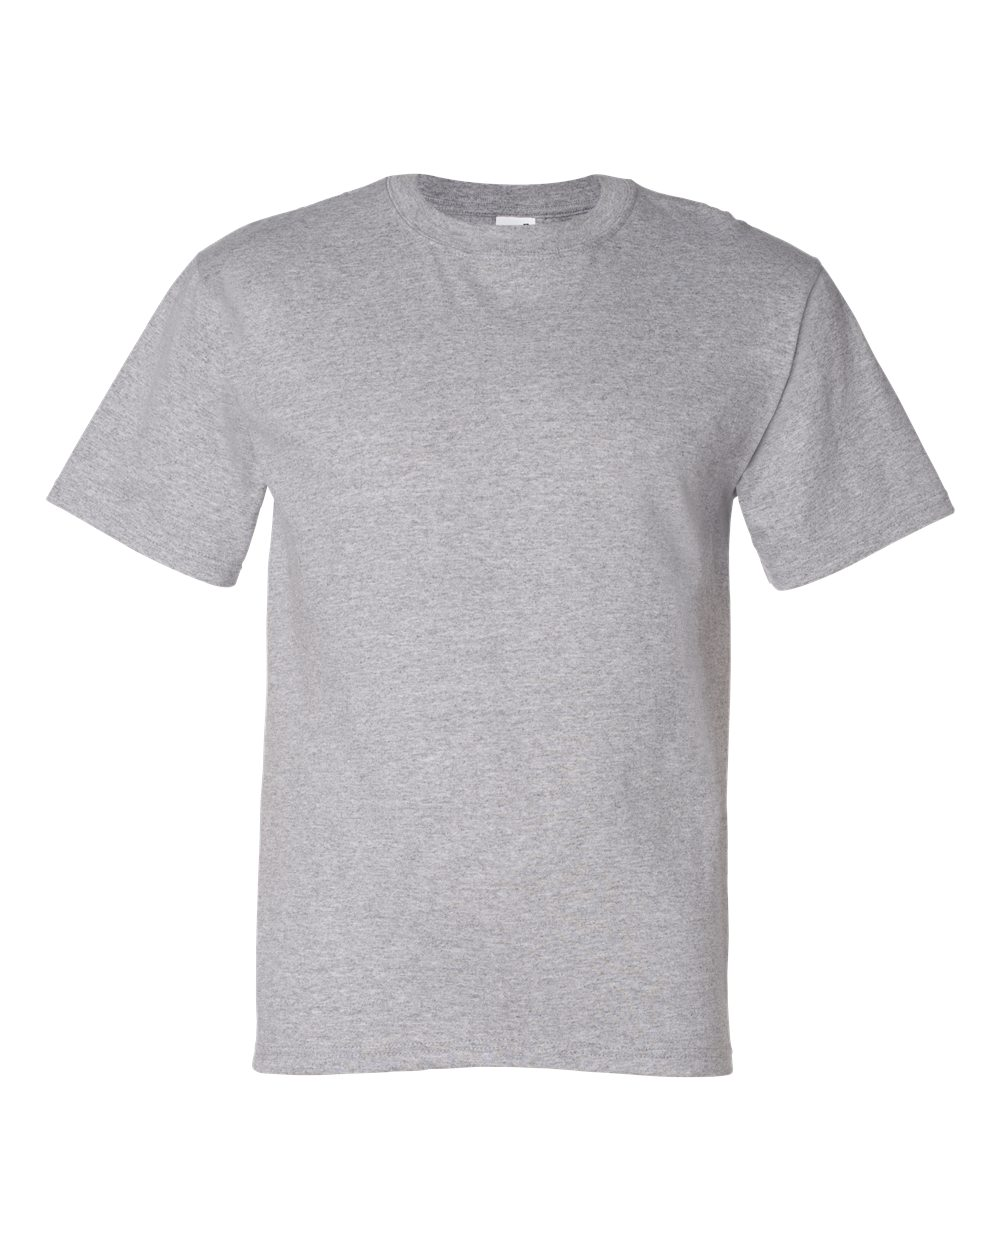 Grey T Shirt Template Front And Back Cut t.